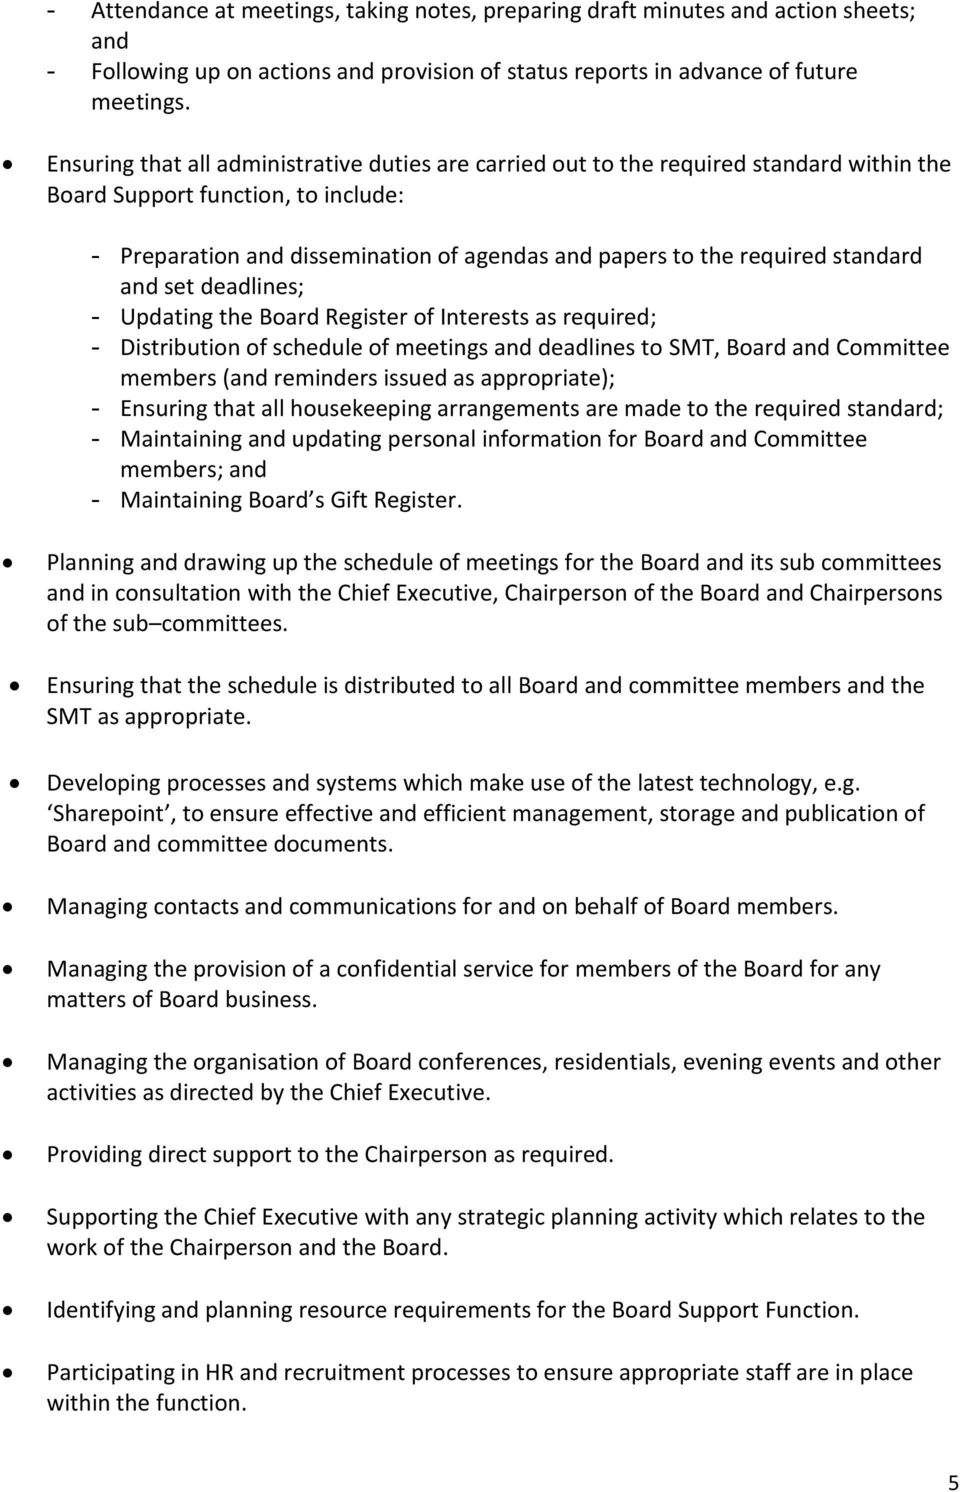 standard and set deadlines; - Updating the Board Register of Interests as required; - Distribution of schedule of meetings and deadlines to SMT, Board and Committee members (and reminders issued as